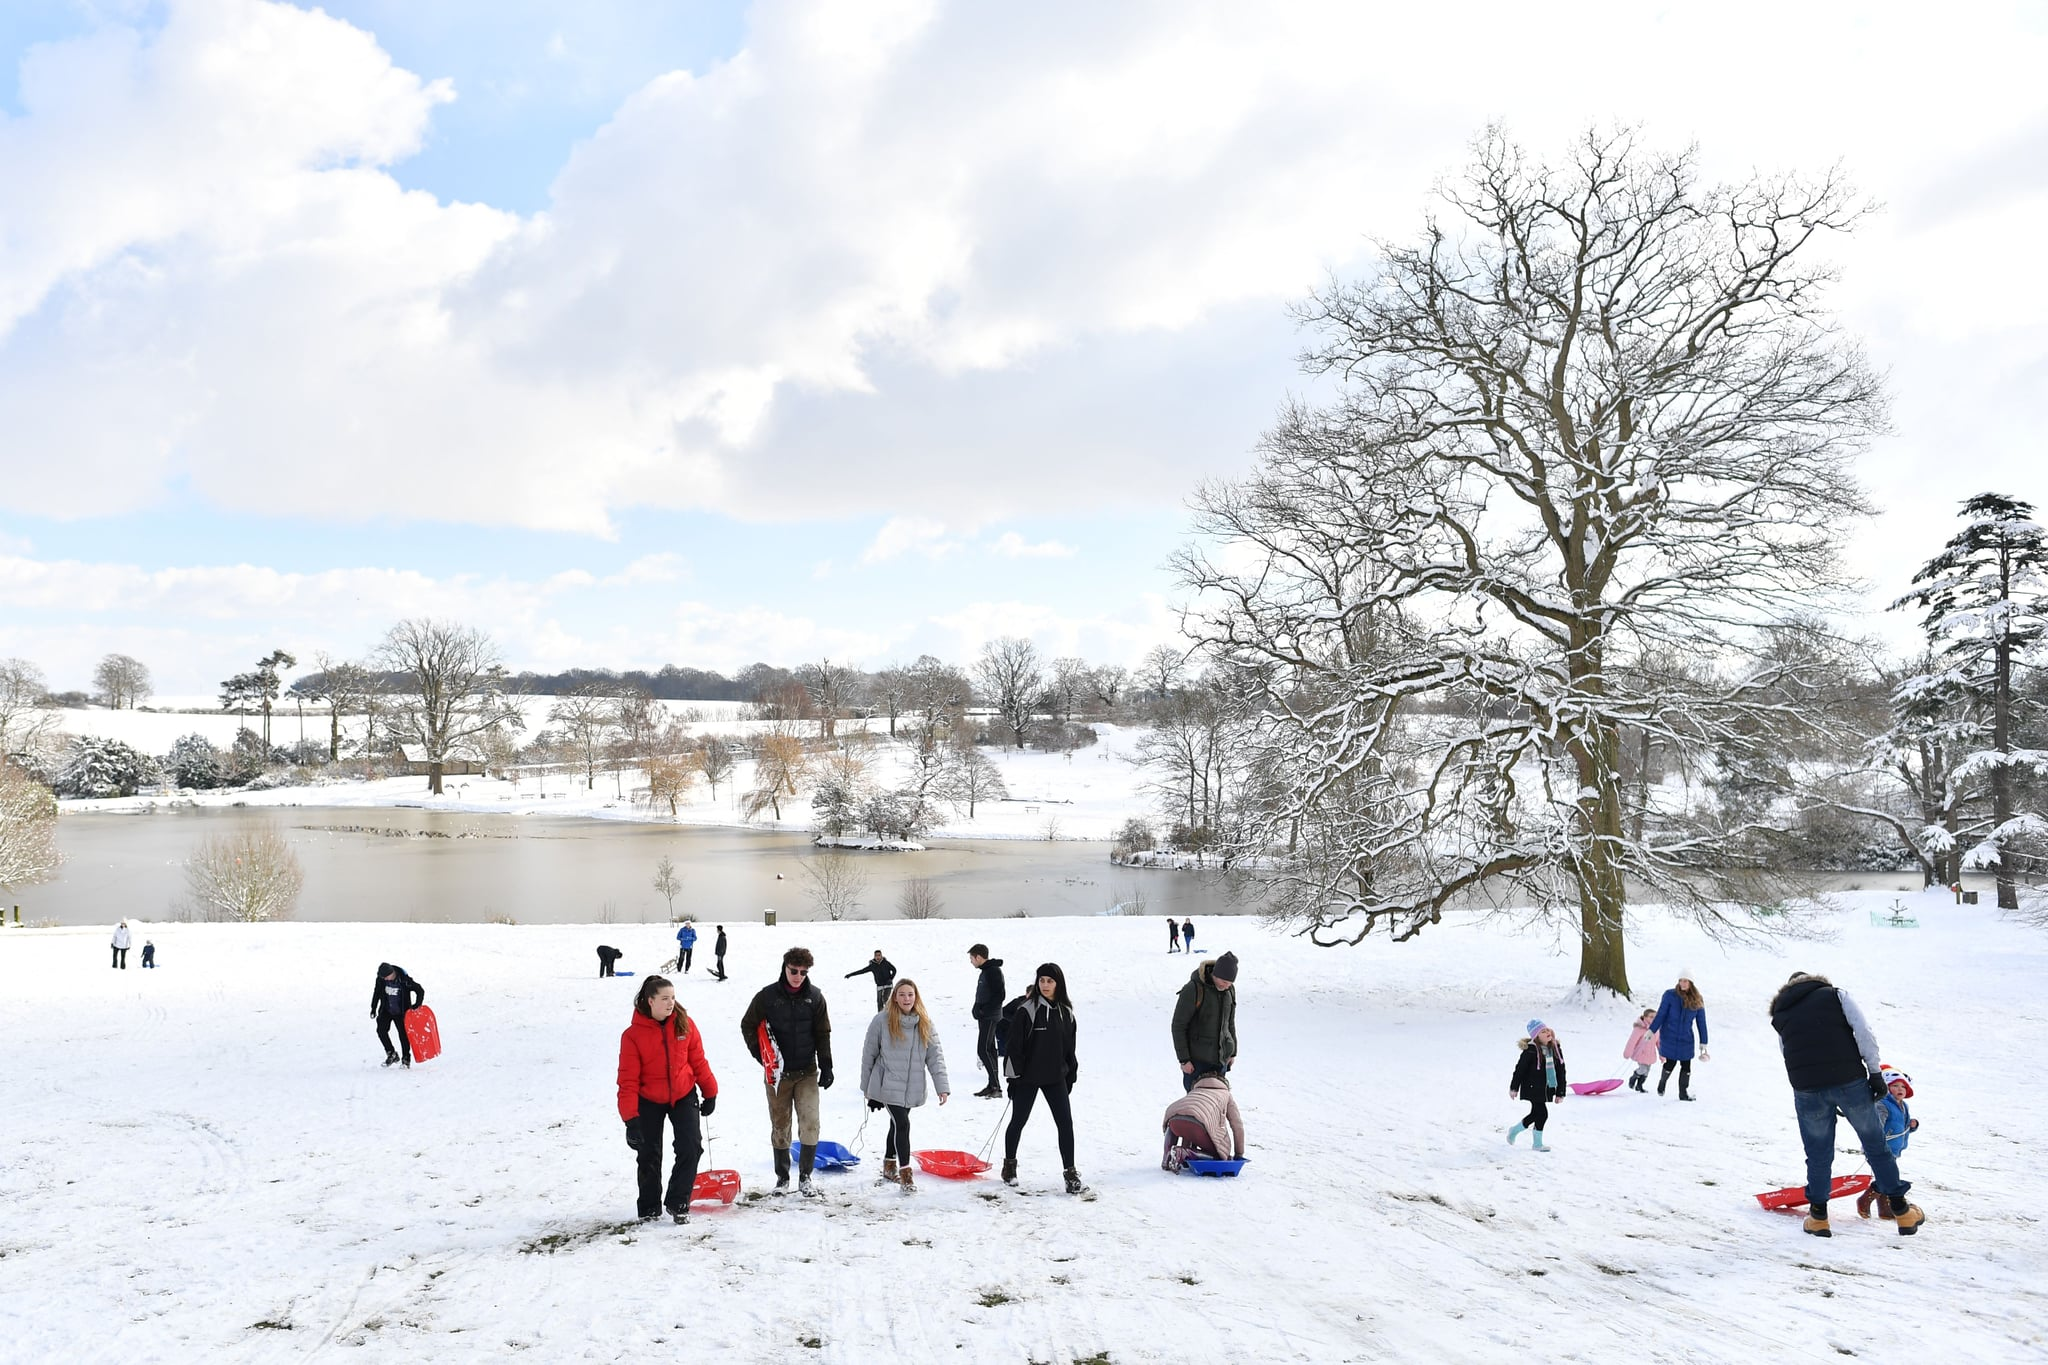 People go sledging in Dunorlan park in Tunbridge Wells following a heavy snowfall on February 27, 2018.A blast of Siberian weather sent temperatures plunging across much of Europe on Tuesday, causing headaches for travellers and leading to several deaths from exposure as snow carpeted palm-lined Mediterranean beaches. / AFP PHOTO / Ben STANSALL        (Photo credit should read BEN STANSALL/AFP/Getty Images)